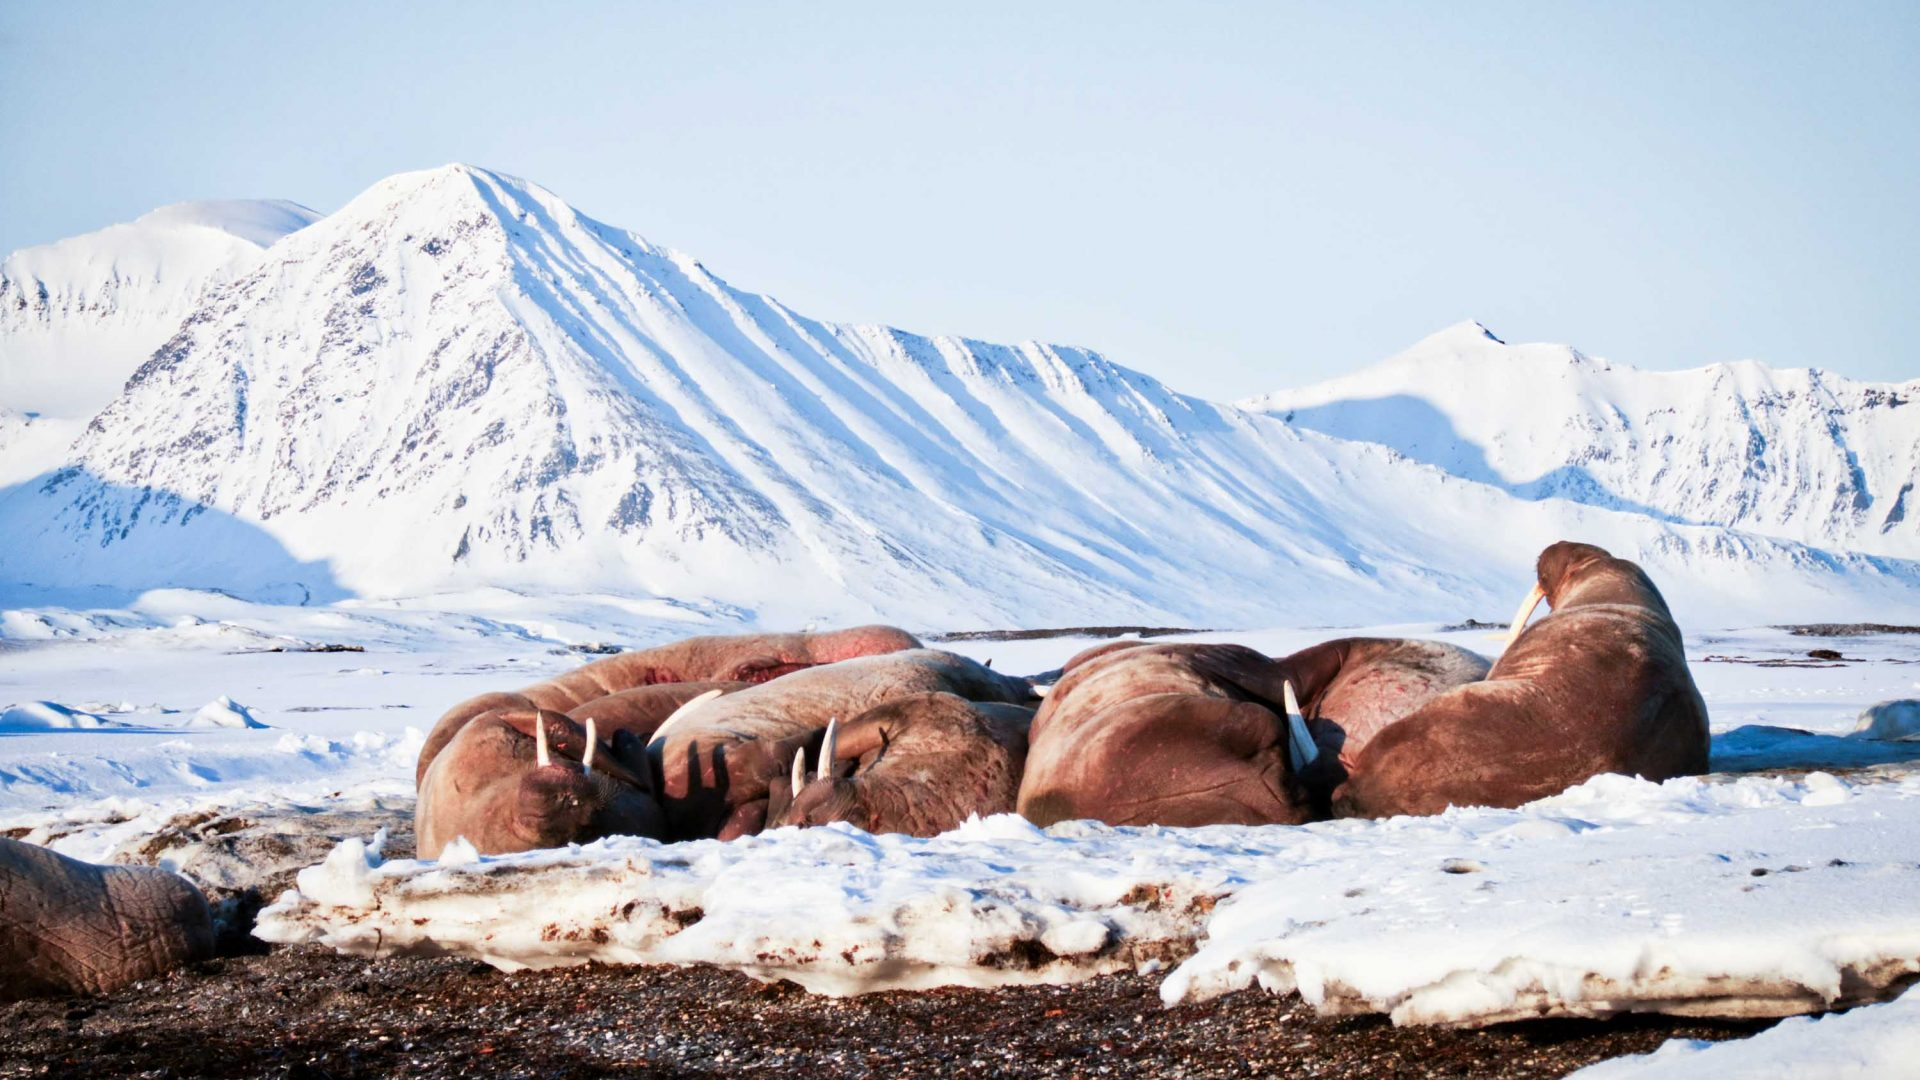 A huddle of walruses on Spitsbergen, seen from the safety of a black beach.